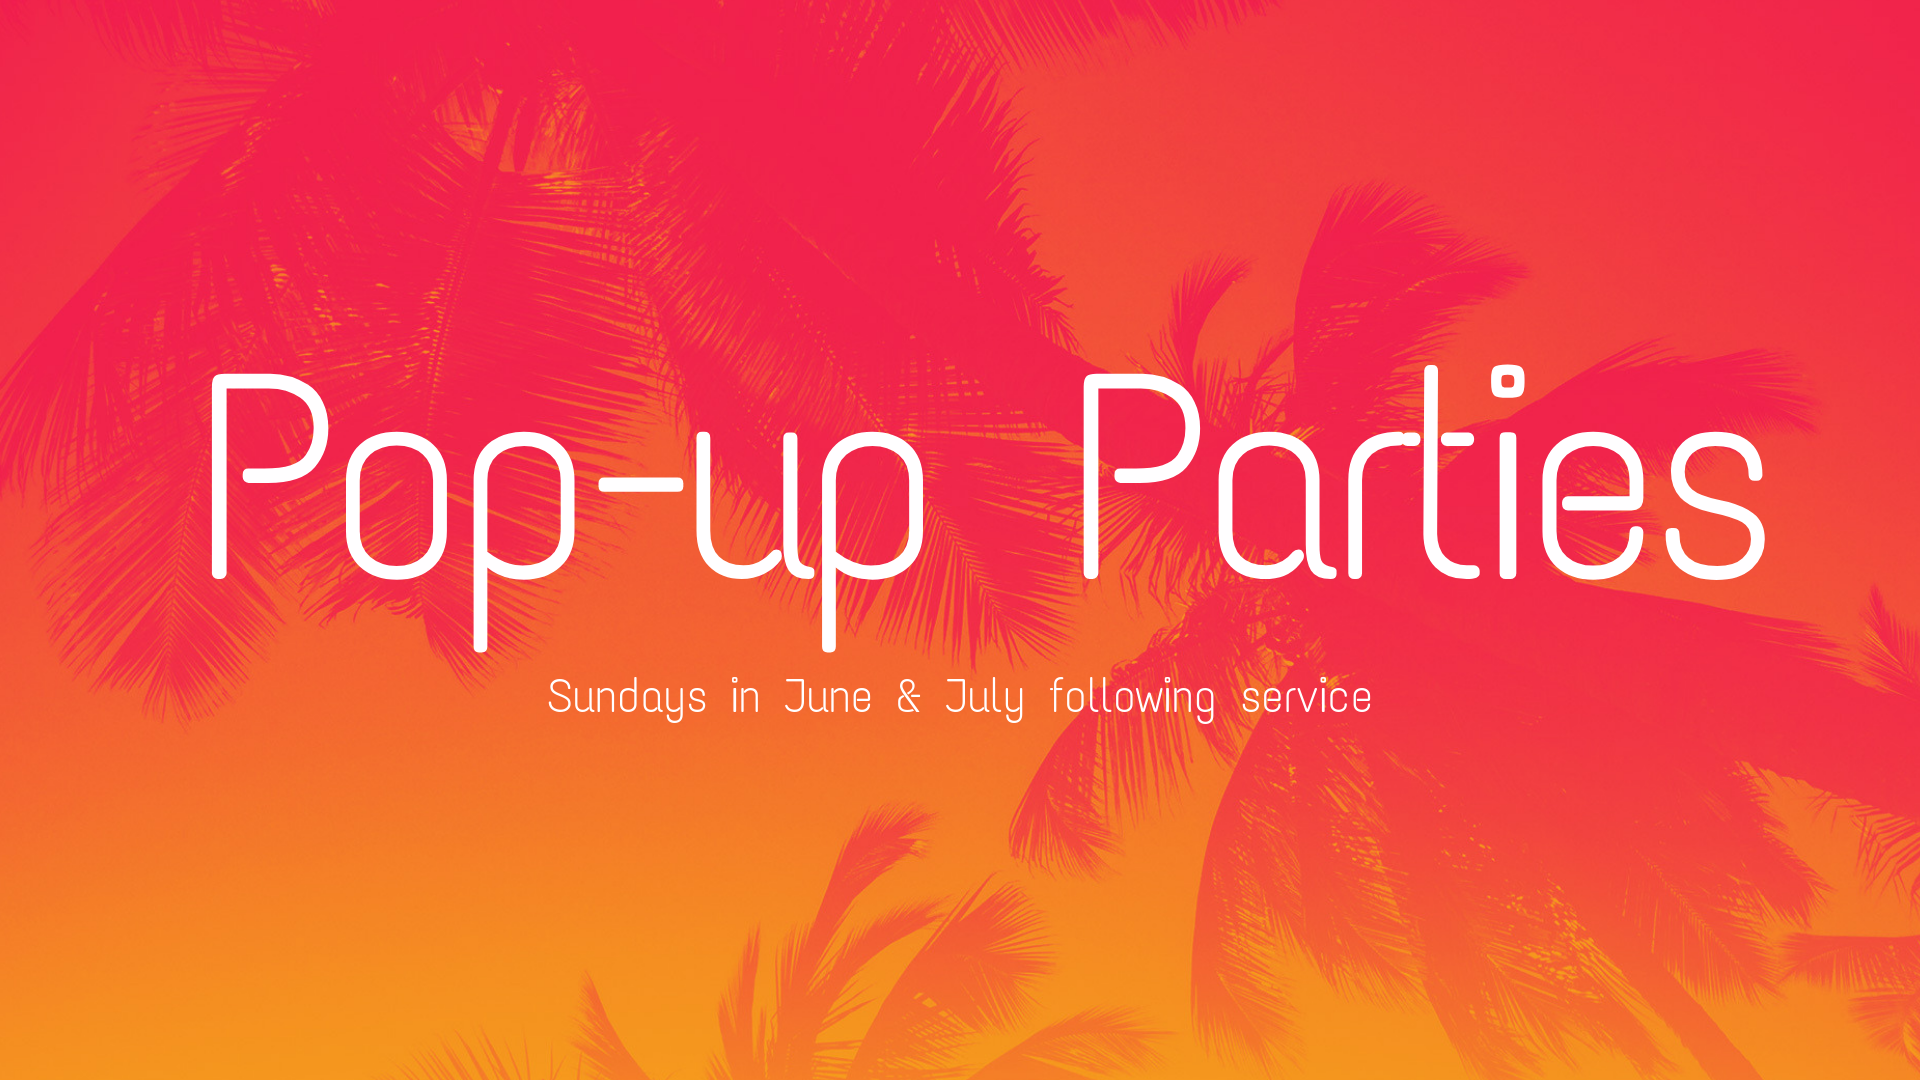 Pop- Up Parties - School is out, Summer is here & we wanna celebrate BIG with you & your whole family! Every Sunday in June & July there will be a pop up party after service.